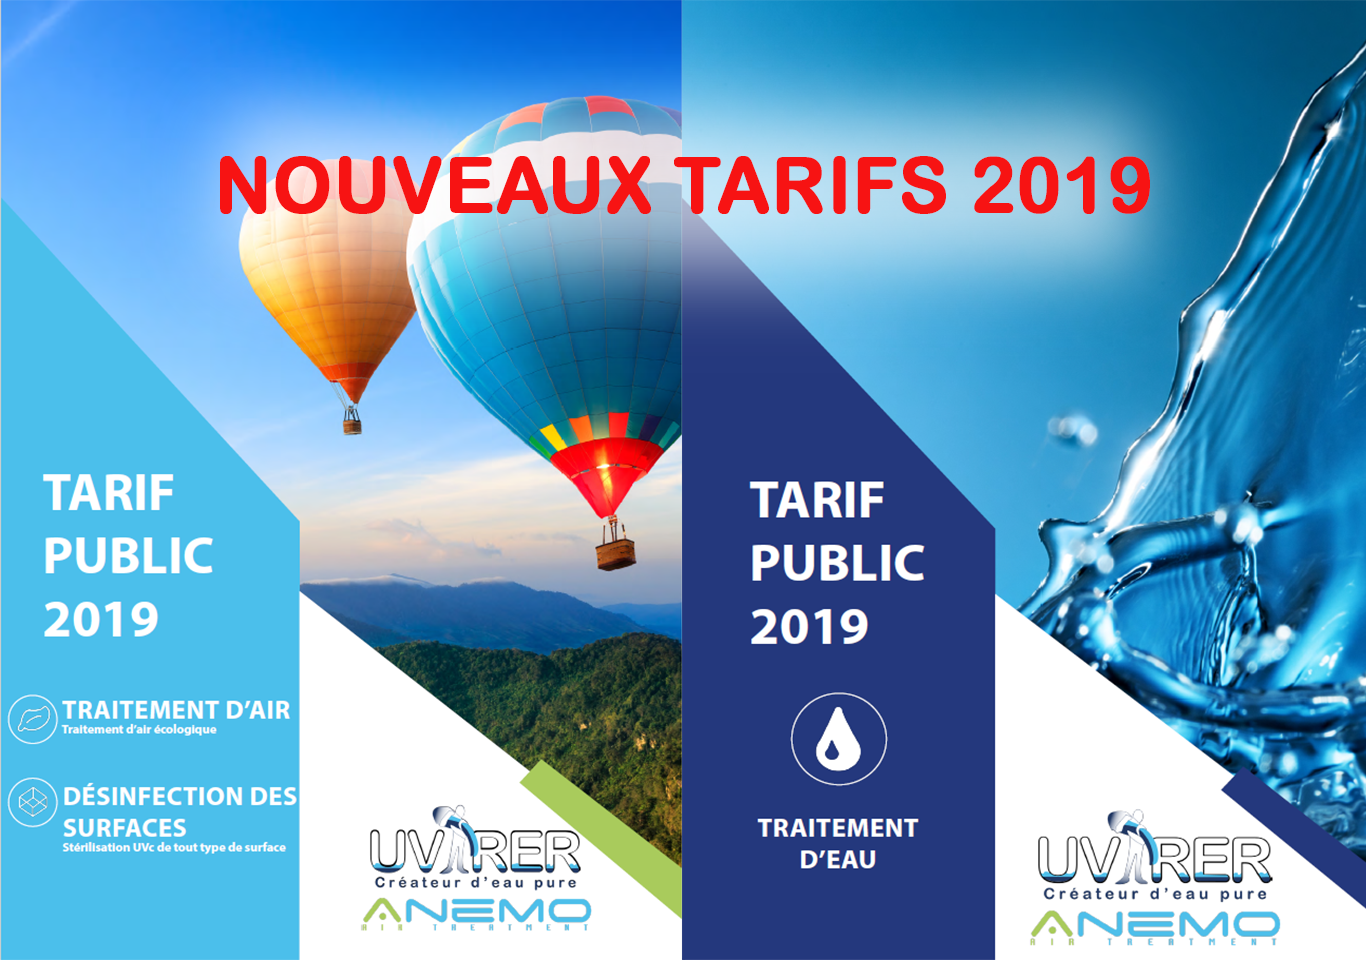 traitement eau ,air désinfection surface tarif 2019